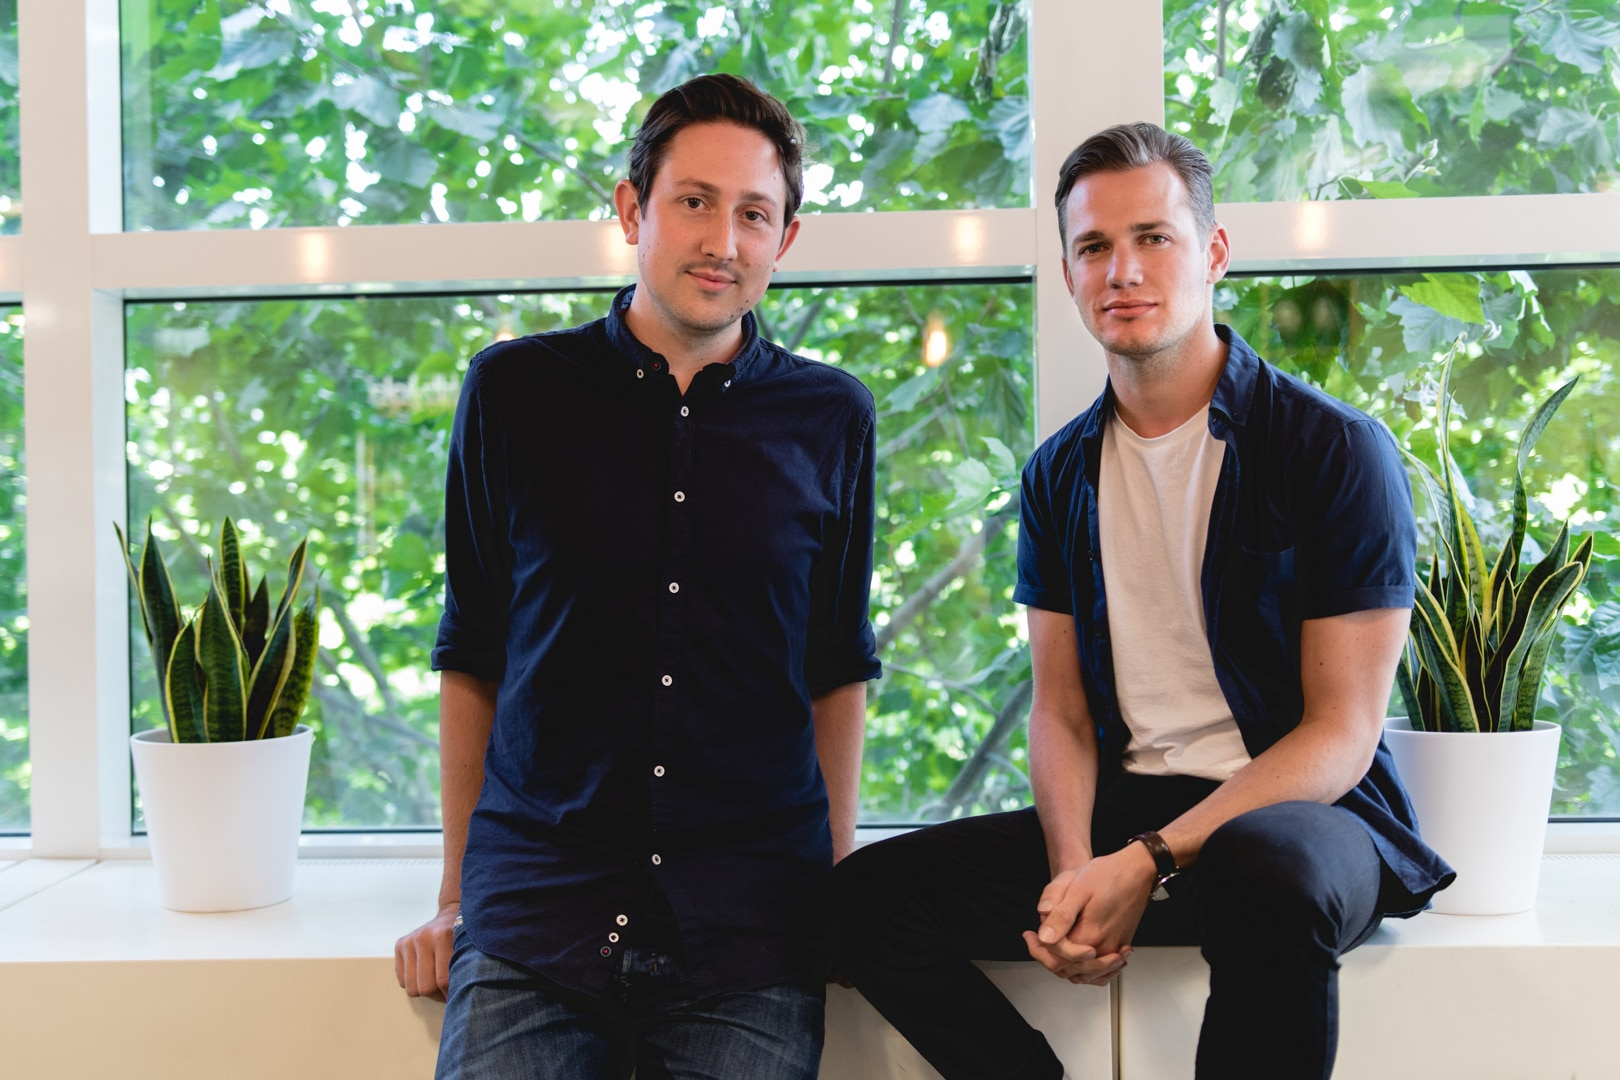 Co-founders profile